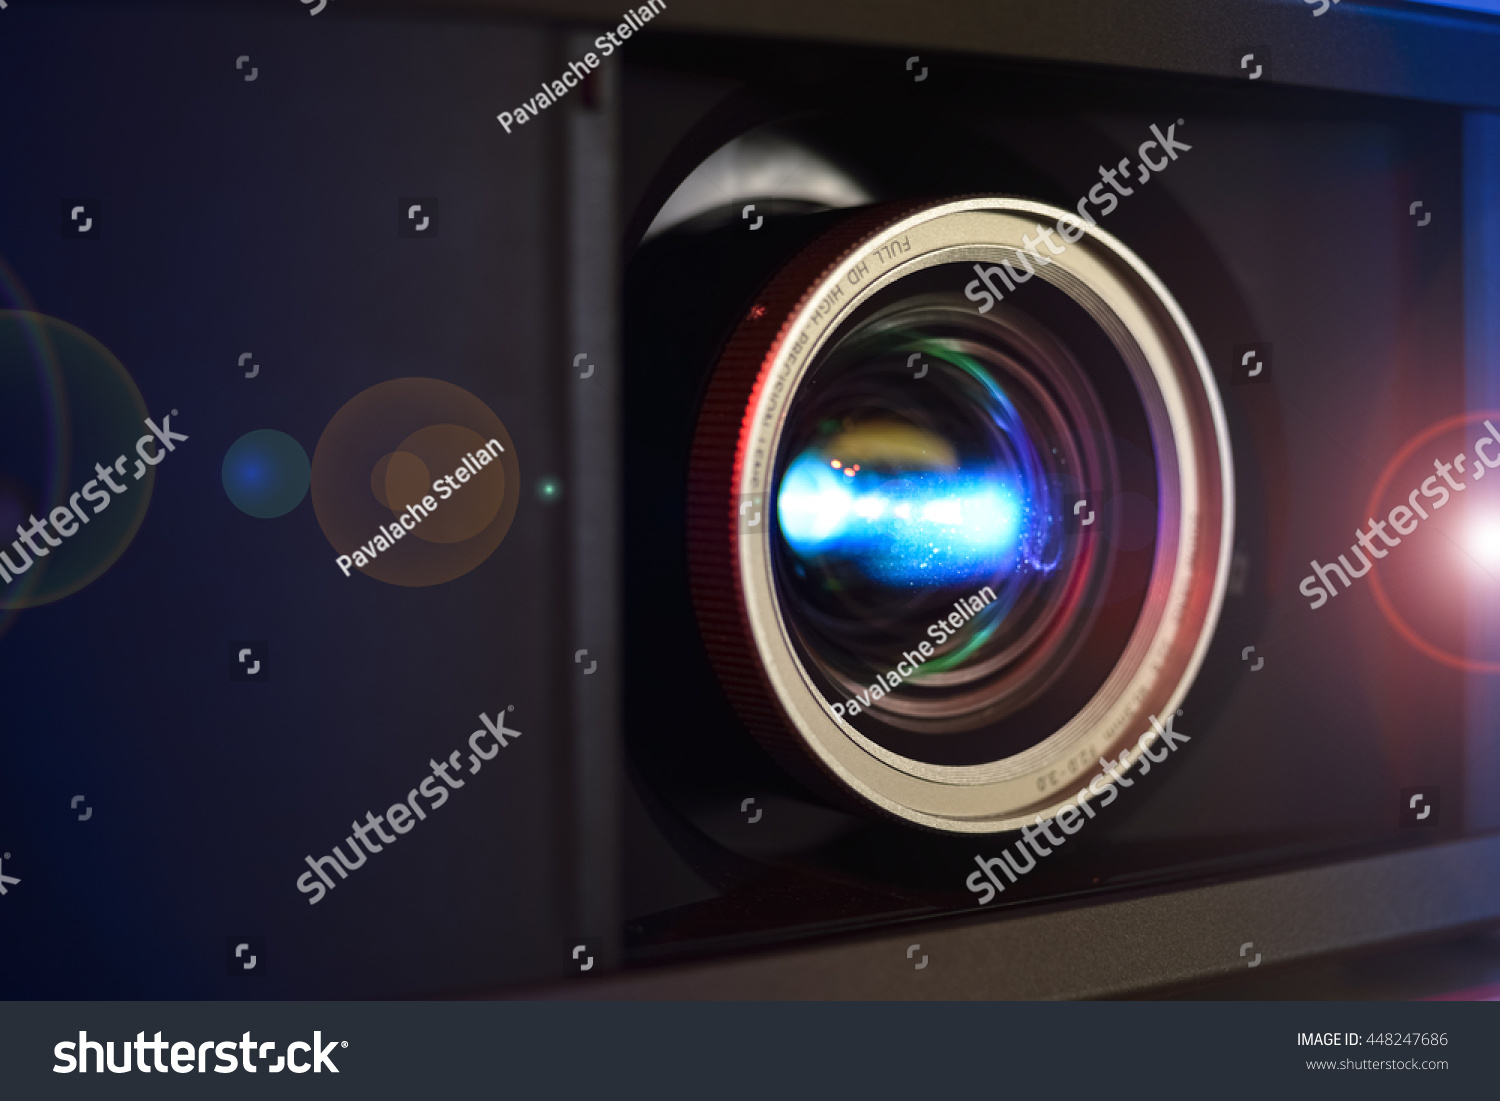 Full hd video projector lens closeup stock photo 448247686 for Hd video projector